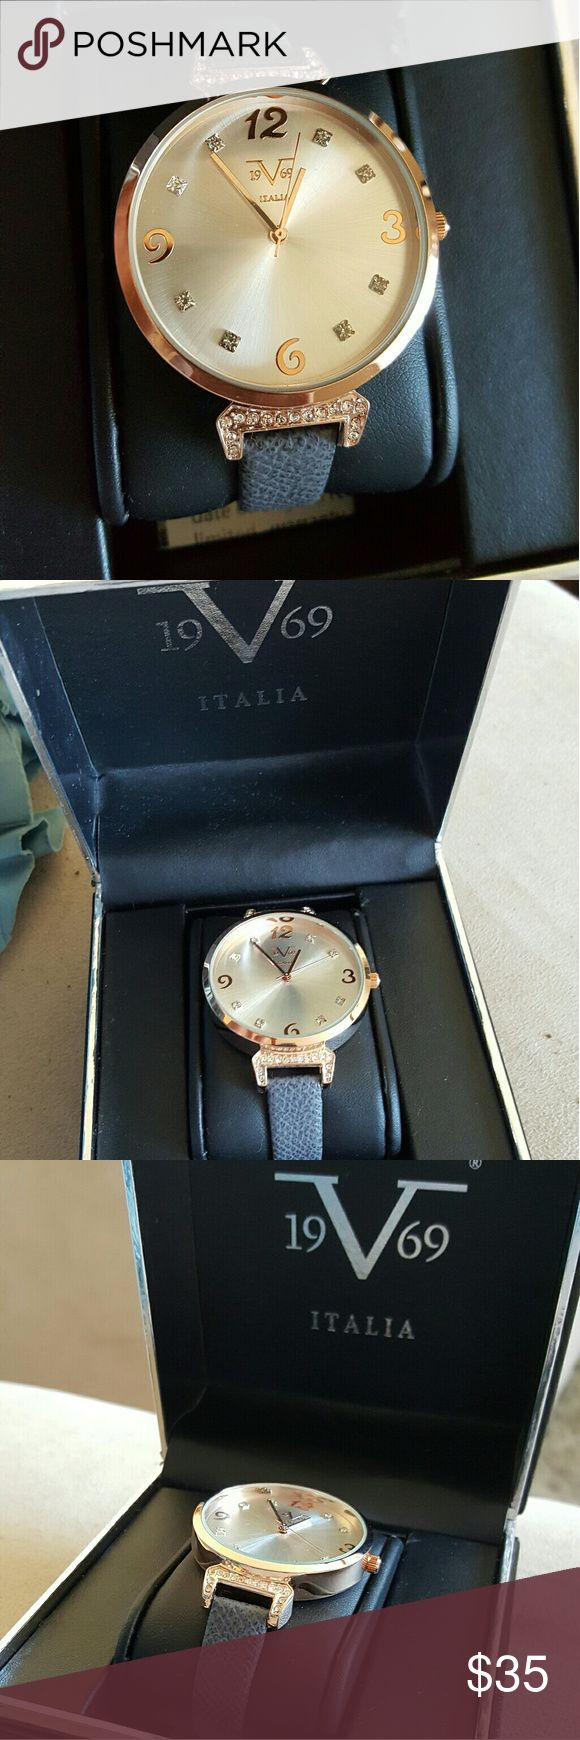 Beautiful ladies rose gold watch unused and unworn. Brand new with box Italia  Accessories Watches